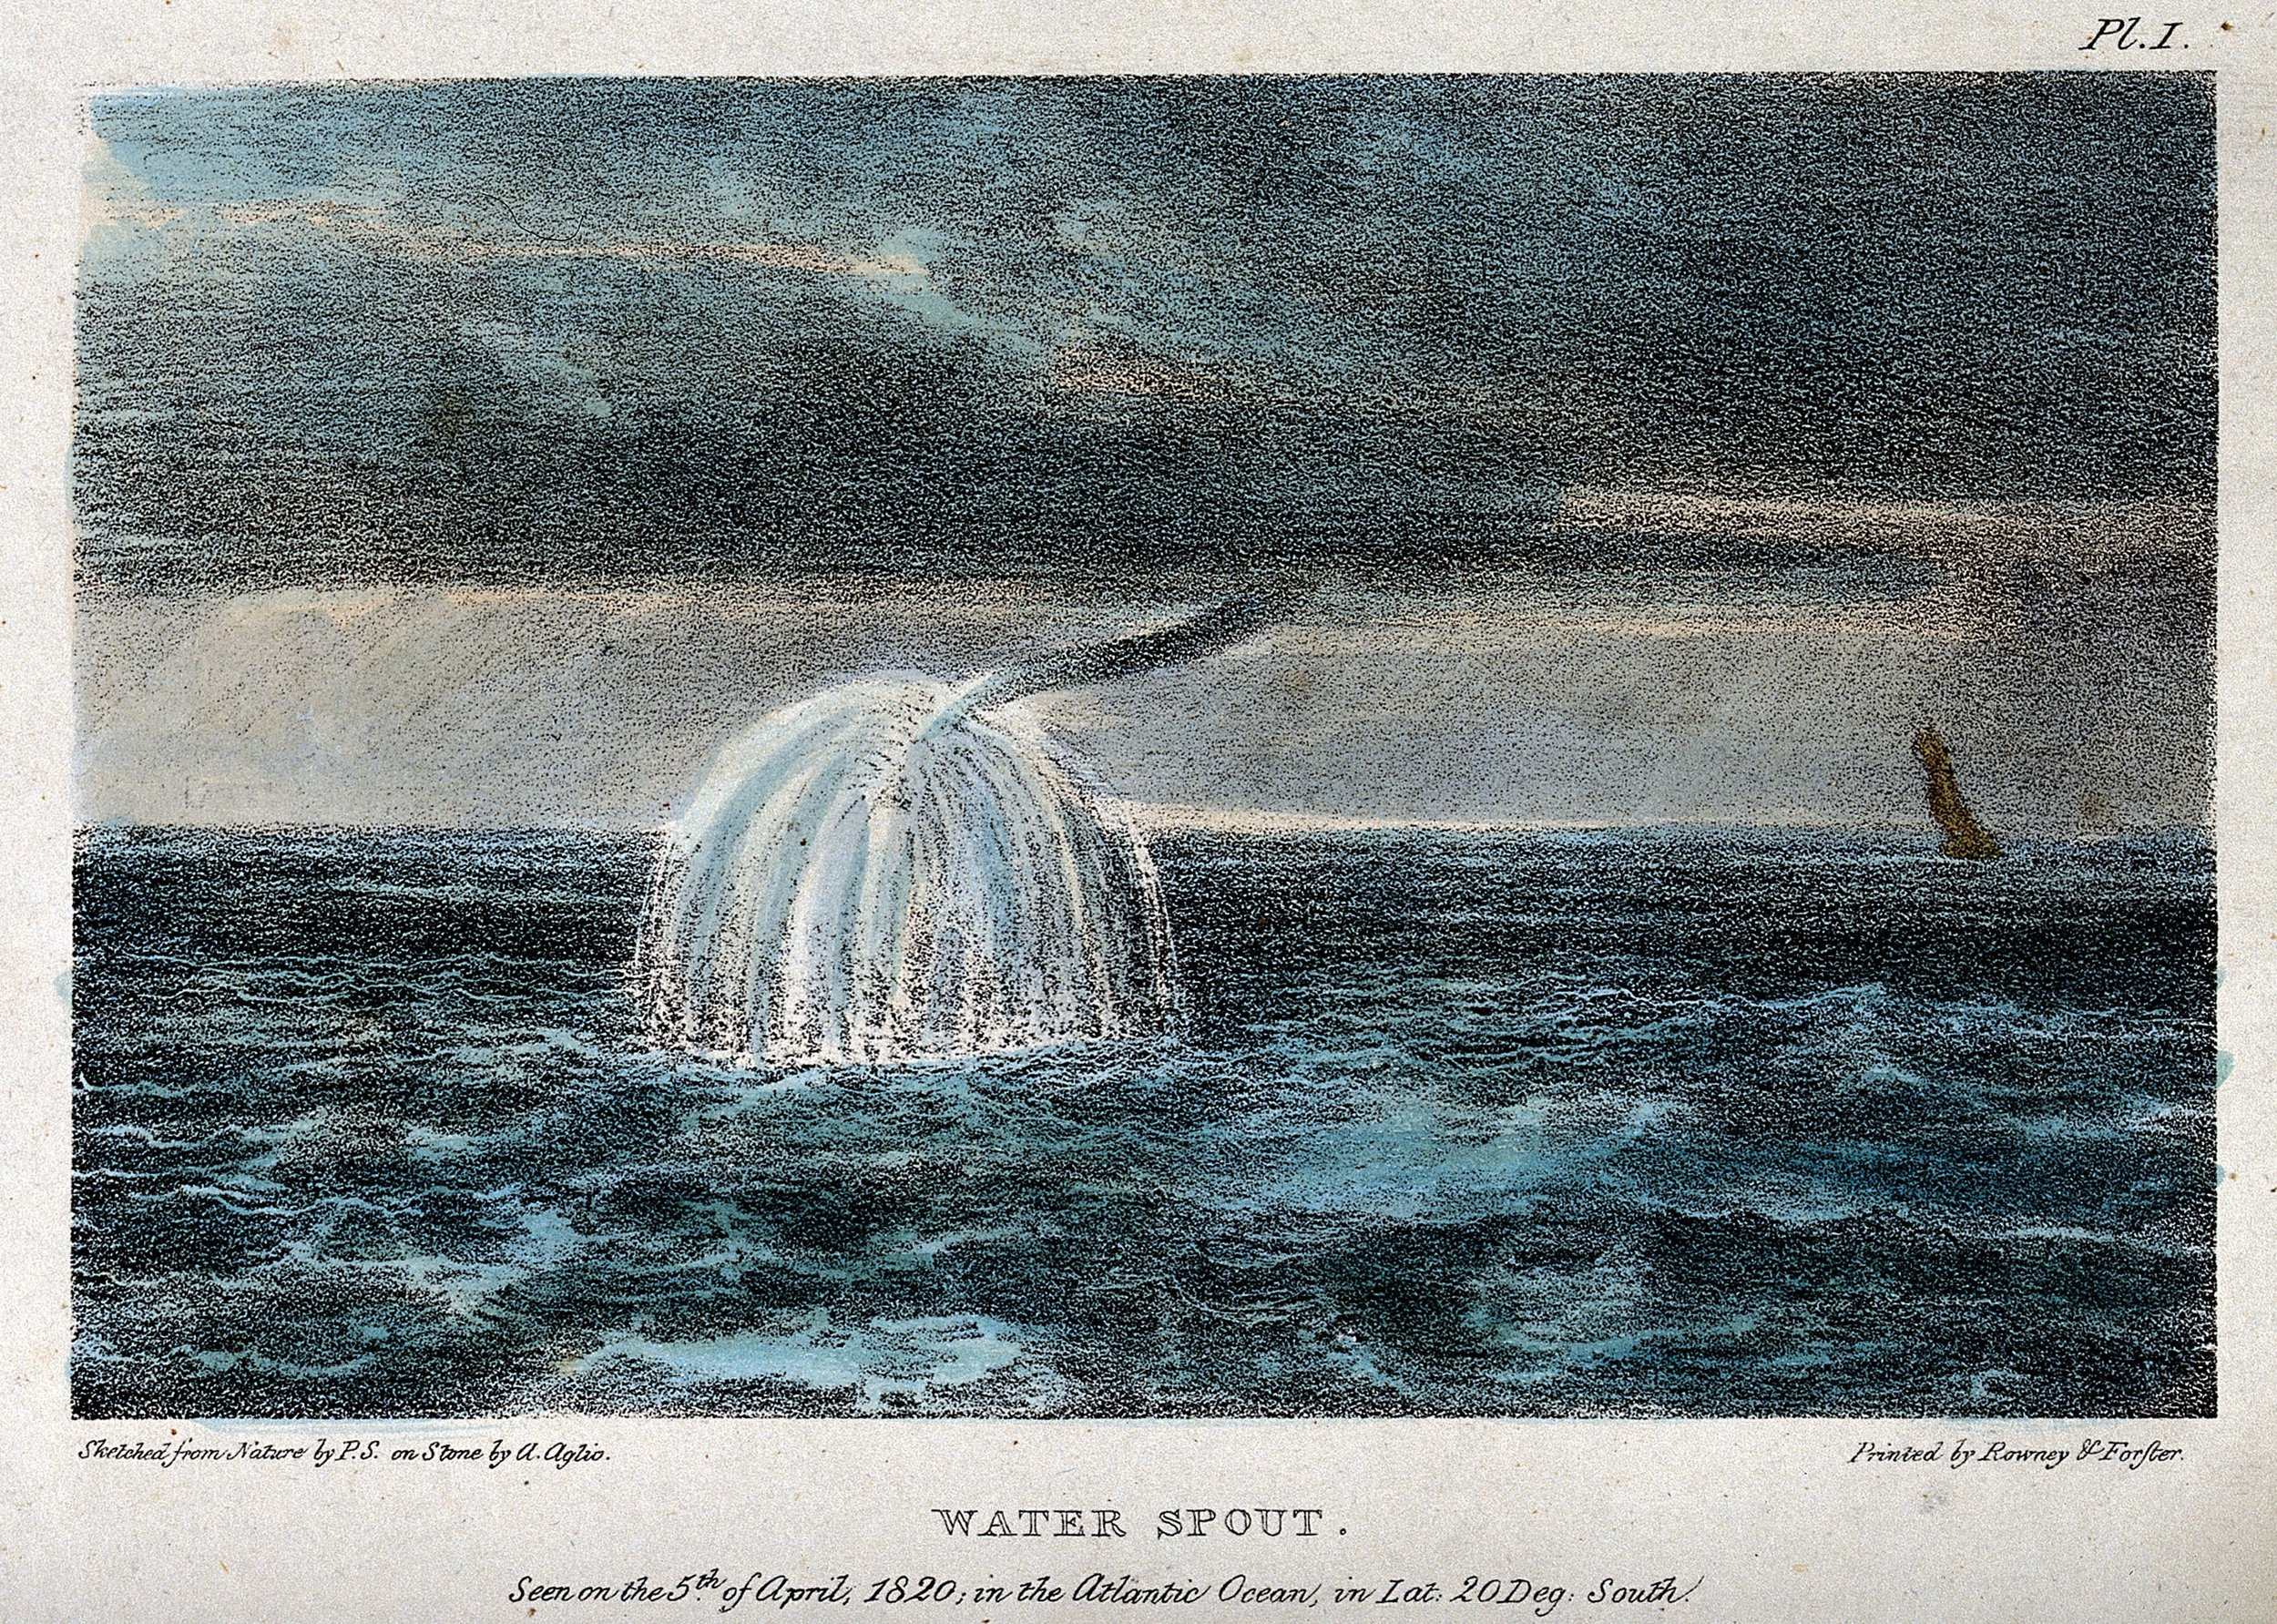 A waterspout observed over the Atlantic Ocean on 5 April 1820. Sketched from nature by P. S. and coloured lithograph by  Agostino Aglio  (1777– 1857).  source: this file comes from  Wellcome Images , a website operated by Wellcome Trust, a global charitable foundation based in the United Kingdom.